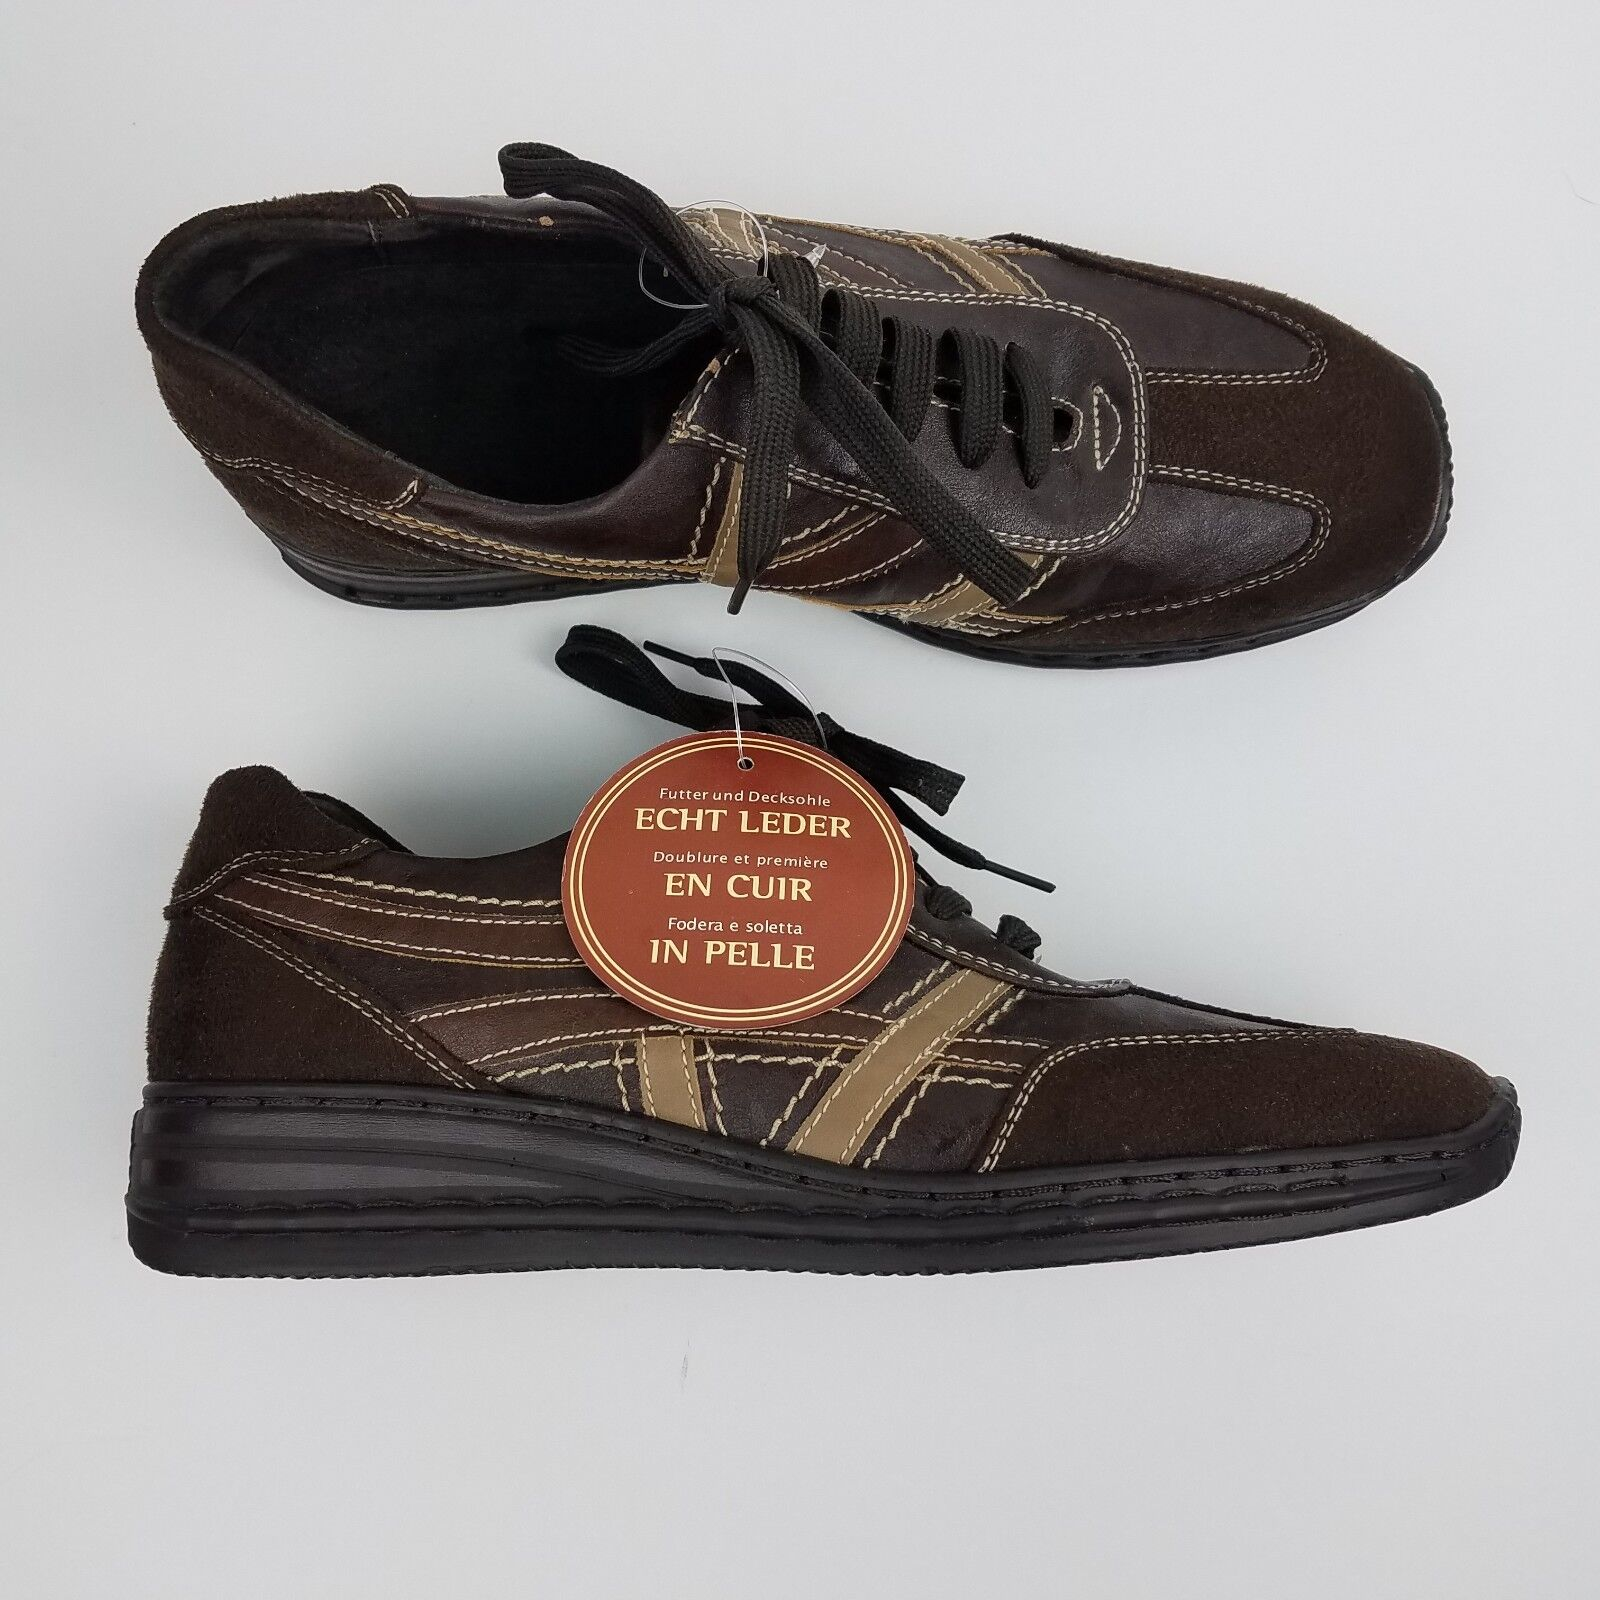 Bonne Forme Brown Women's Leather Walking shoes Sneakers Casual NWT size 7 RARE